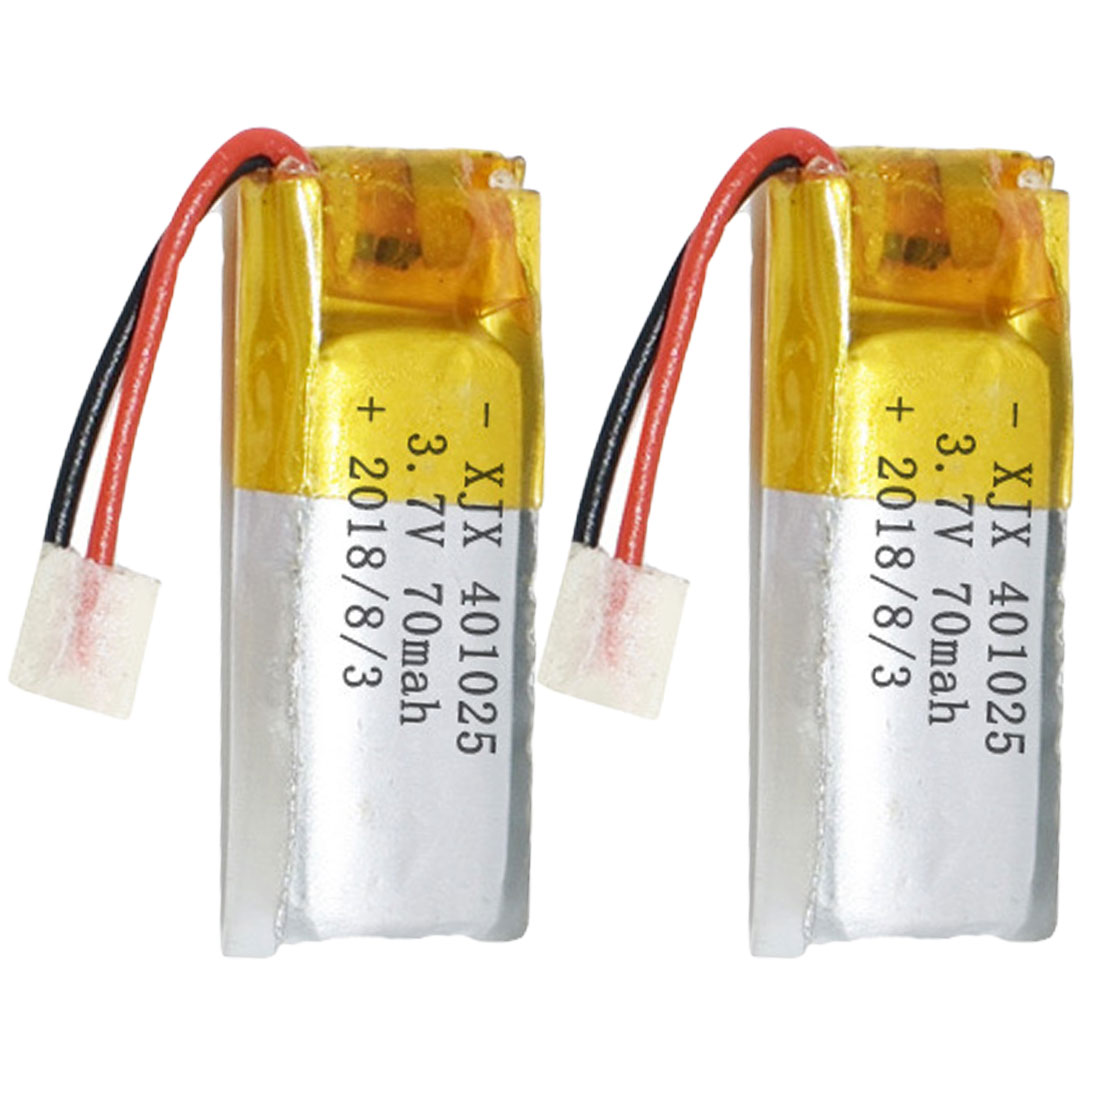 1Pcs 3.7V 70mAh 401025 PLIB Polymer Lithium Ion / Li-ion Battery For GPS MP3 MP4 MP5 DVD Bluetooth Model Toy Mobile Bluetooth